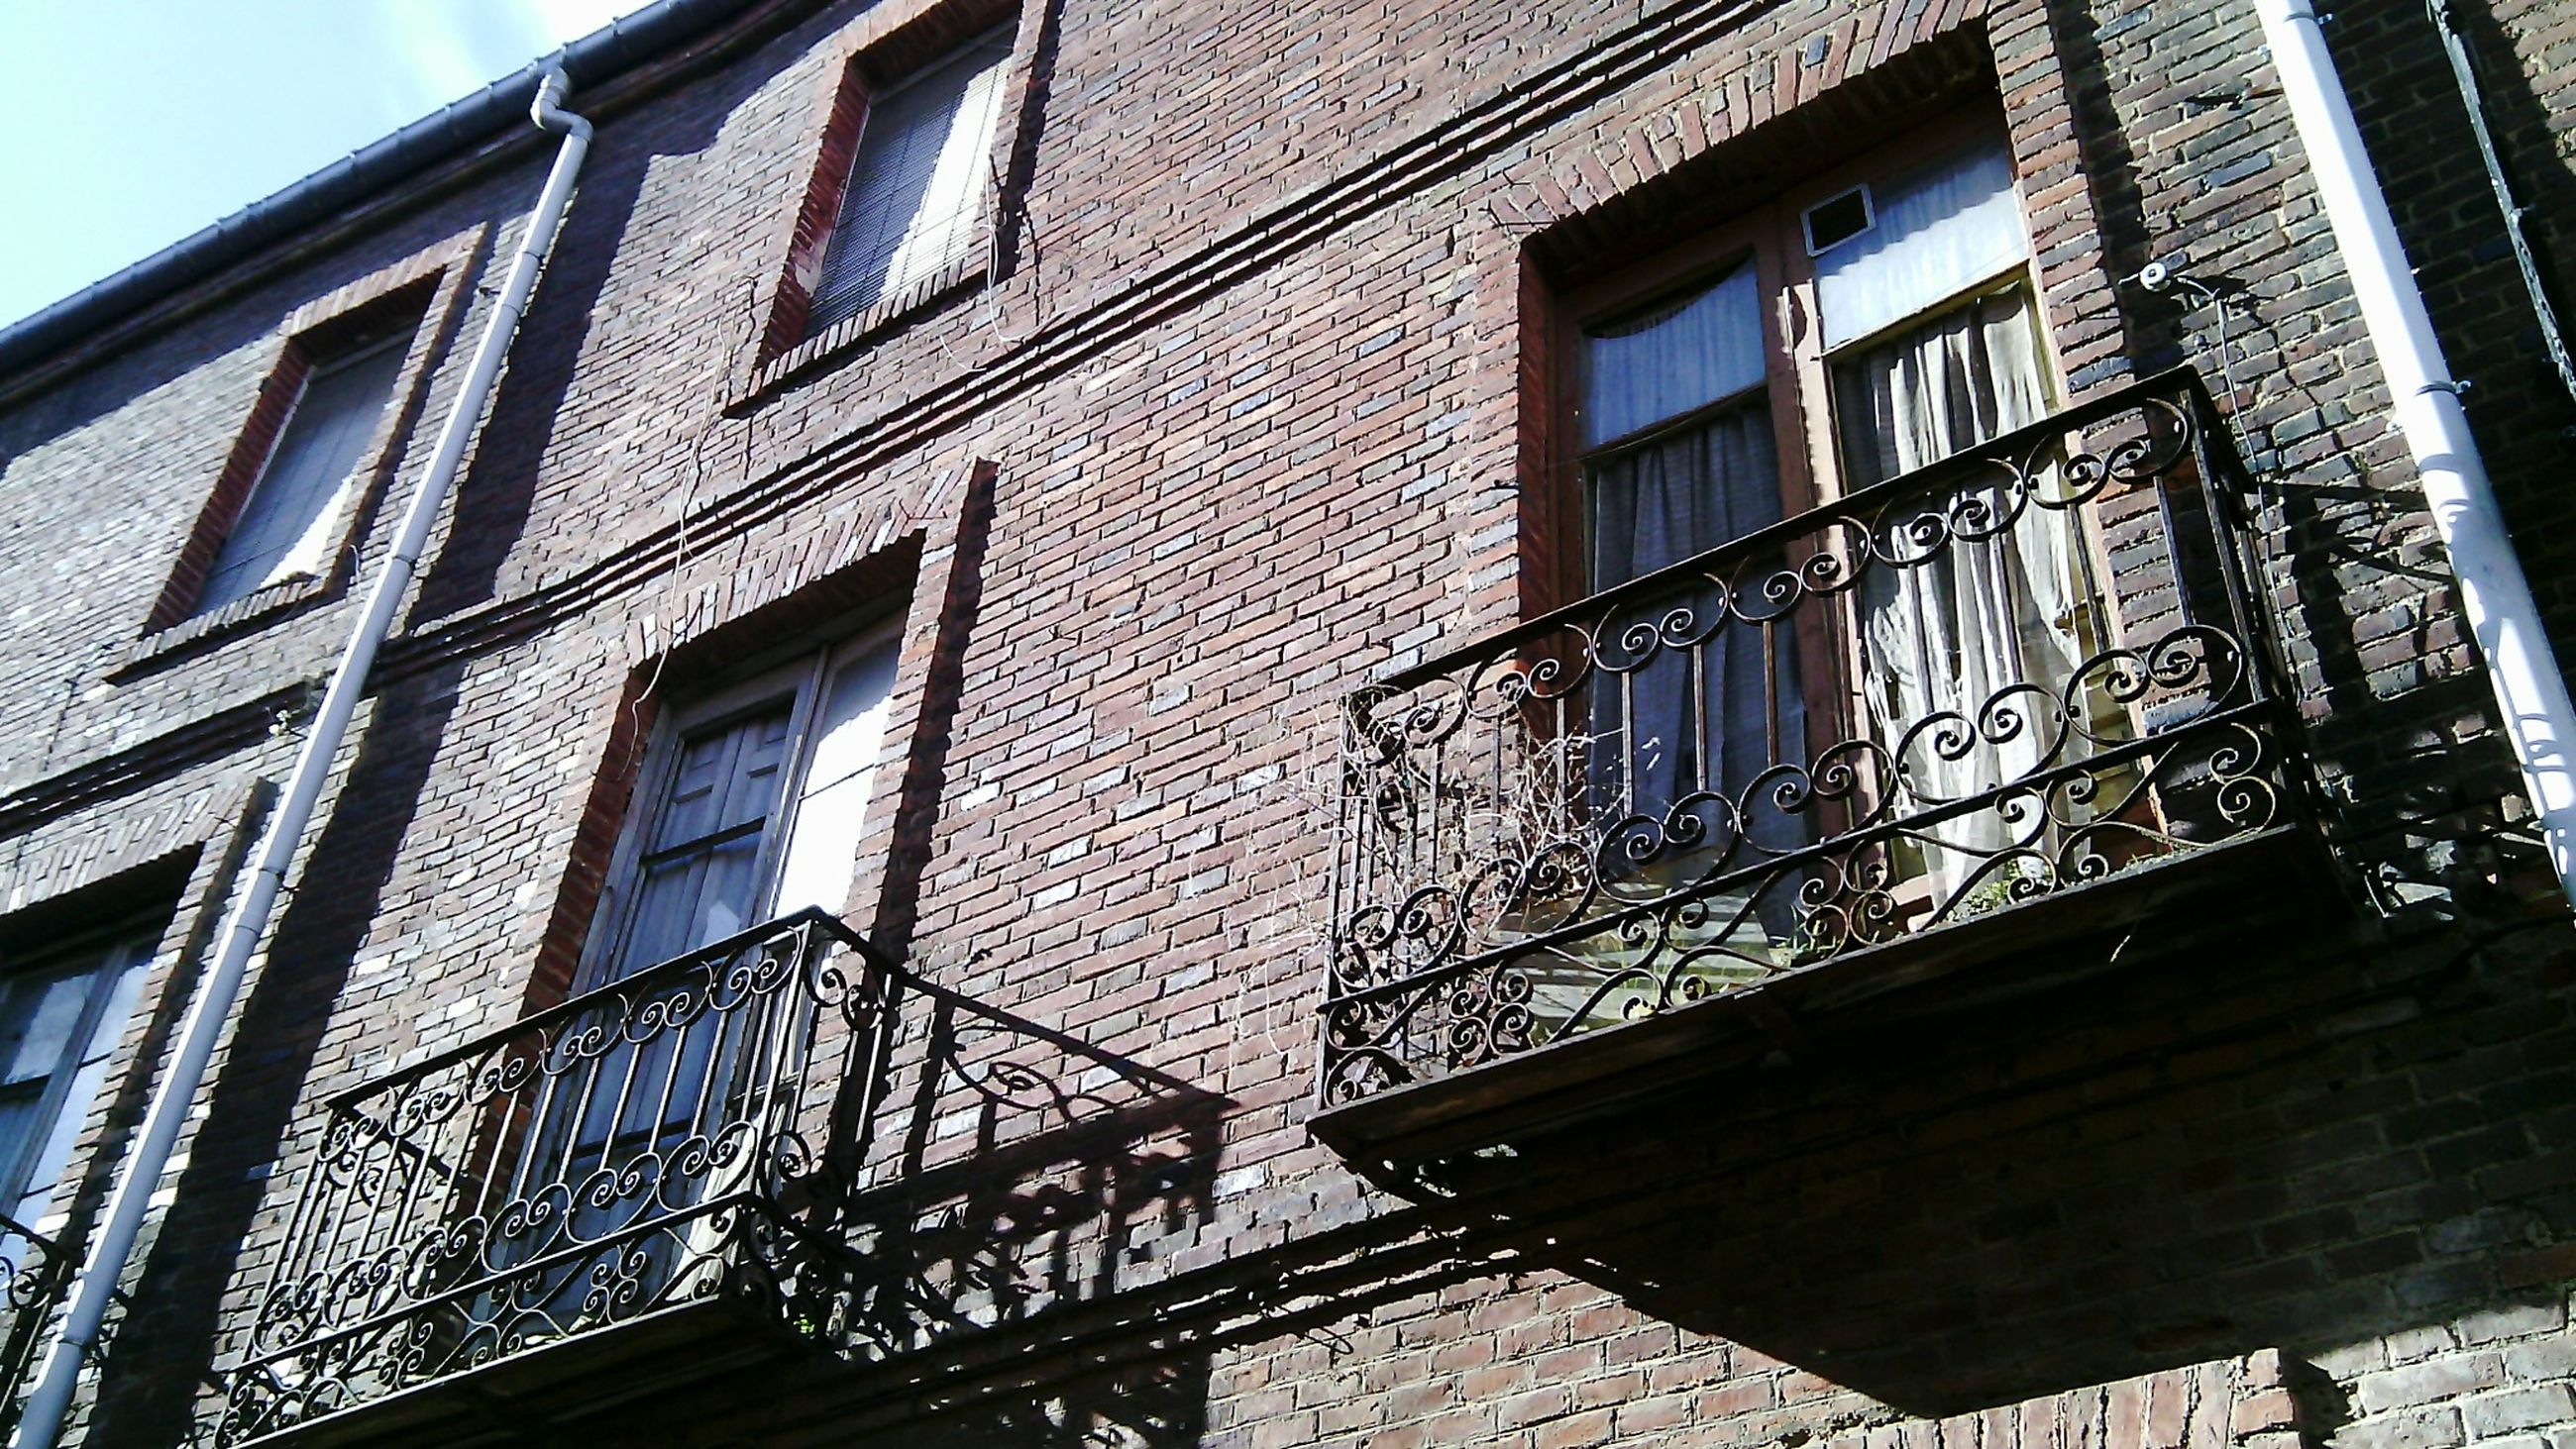 architecture, building exterior, built structure, window, low angle view, building, residential building, residential structure, brick wall, city, glass - material, day, outdoors, no people, balcony, apartment, reflection, facade, sky, house